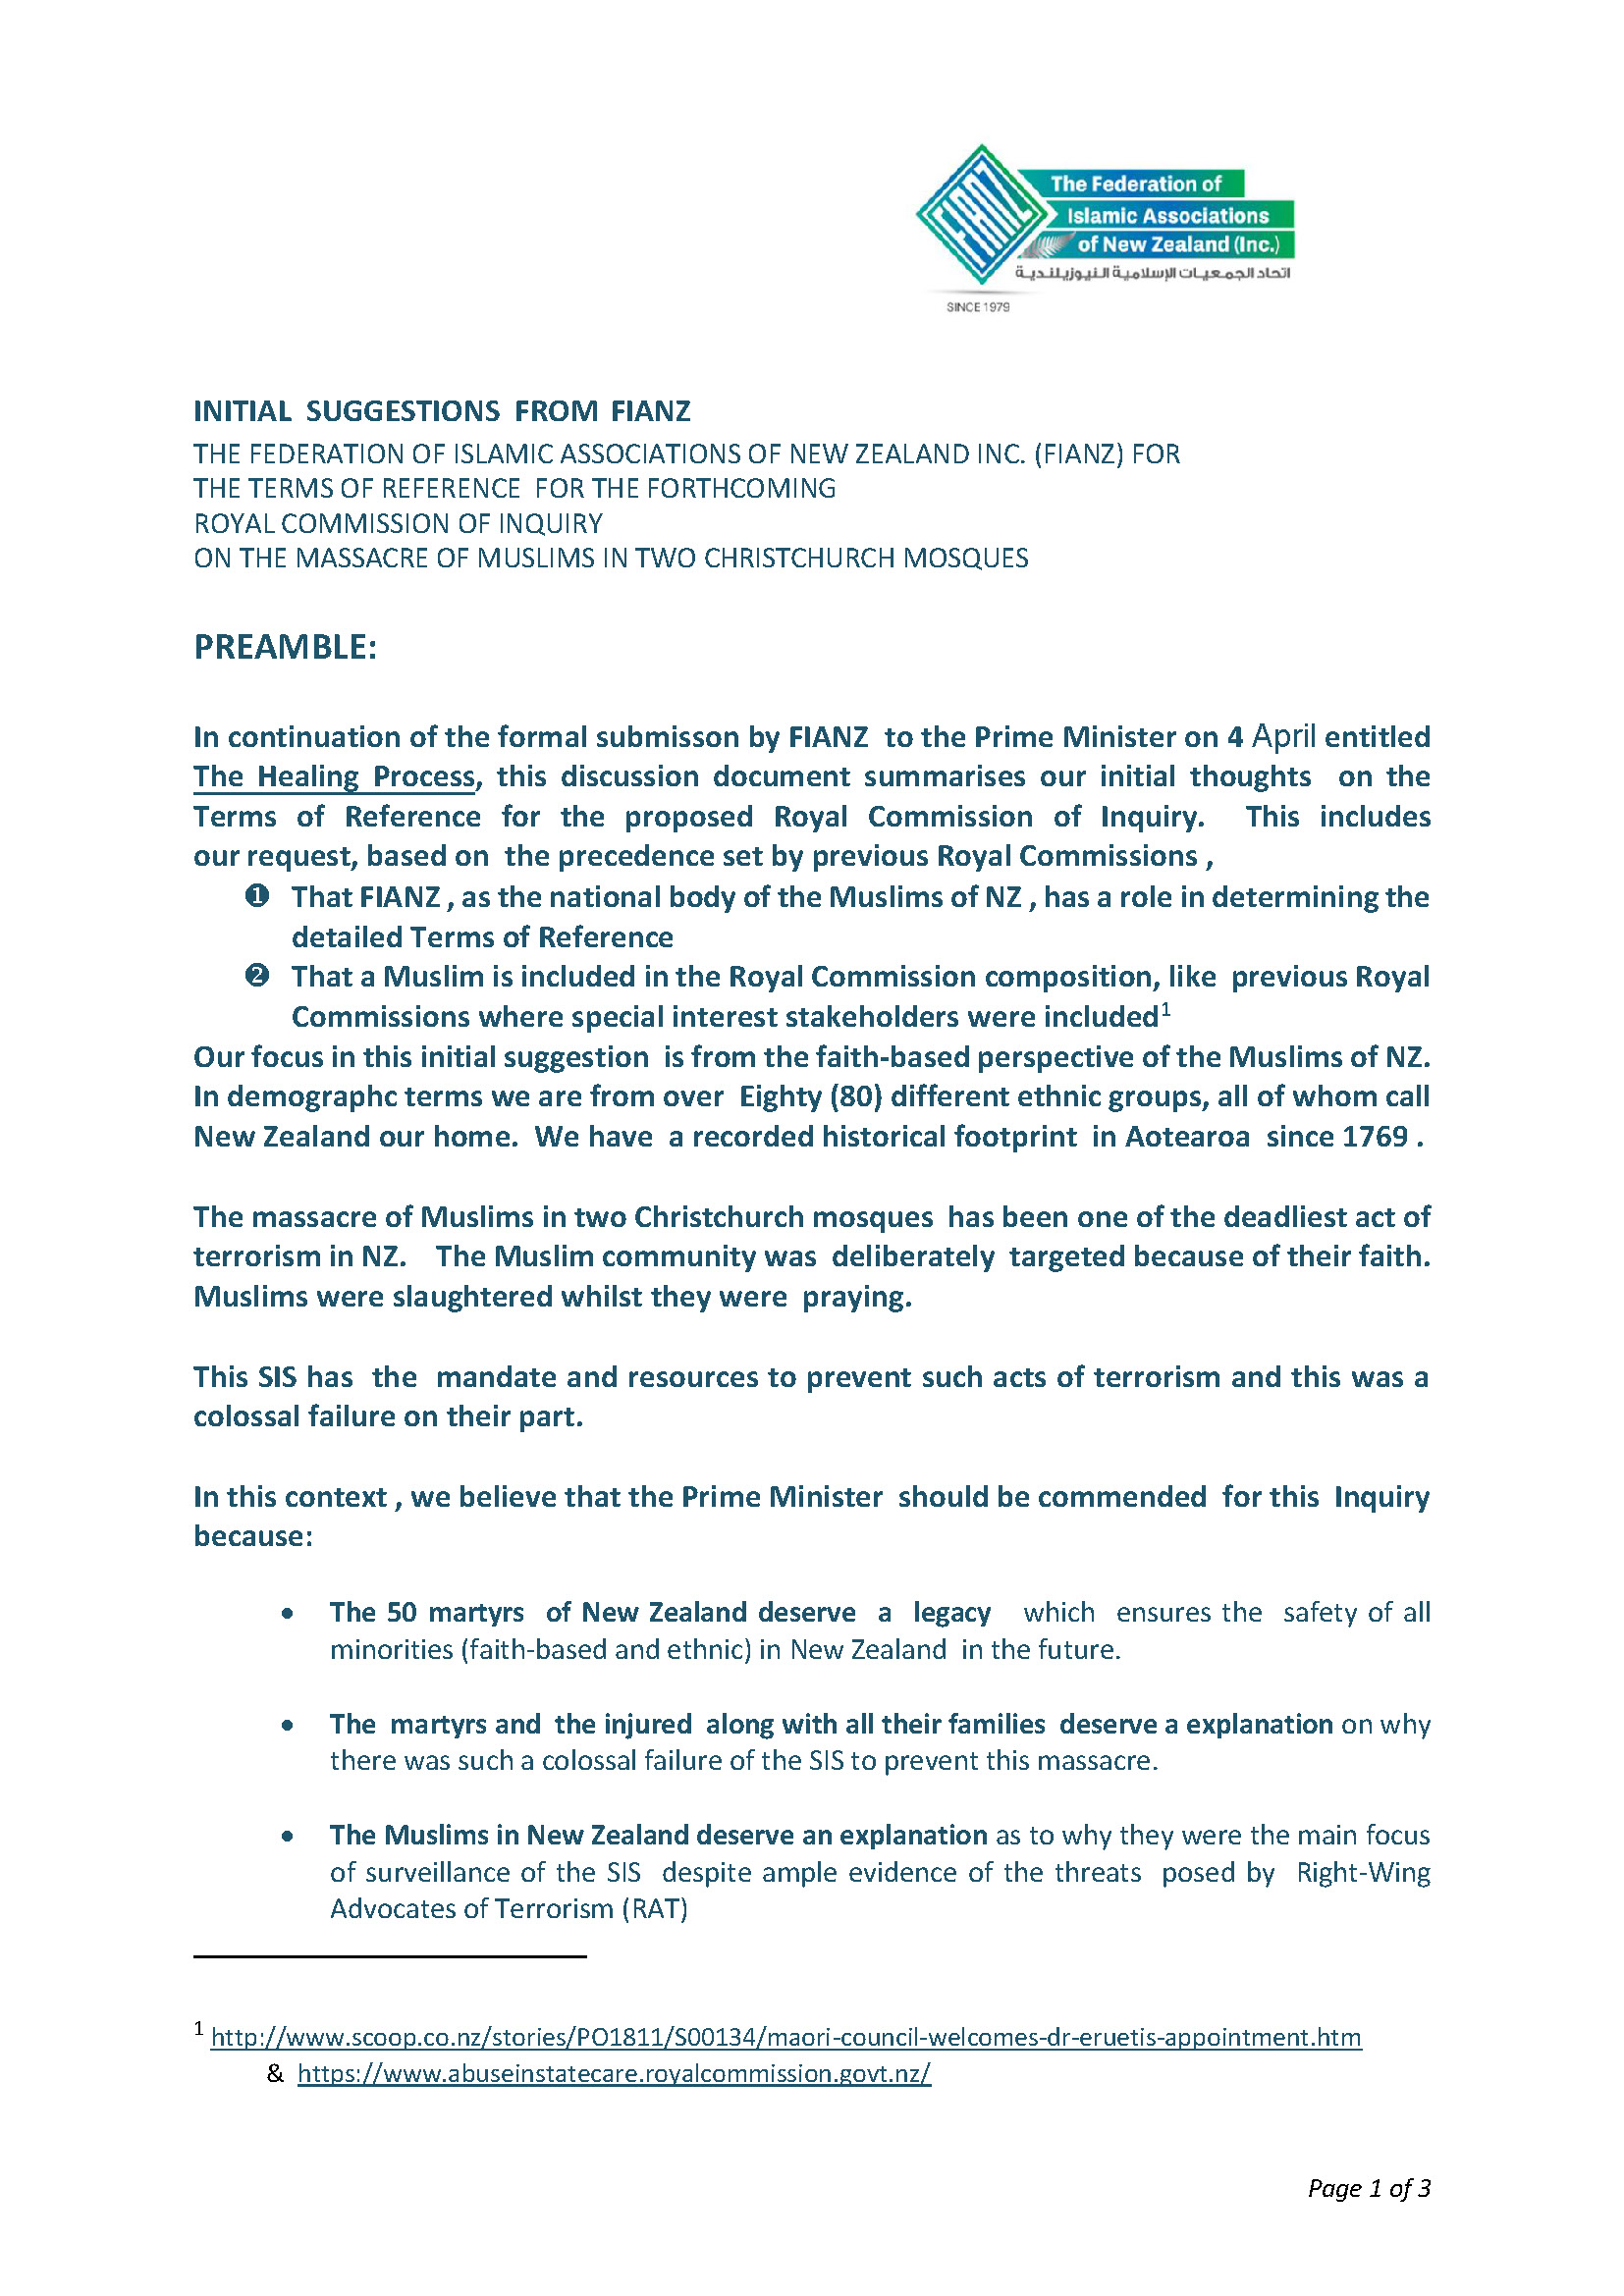 INITIAL-DISCUSSION-ROYAL-COMMISSION-TOR-7-April-2019-amended_Page_1